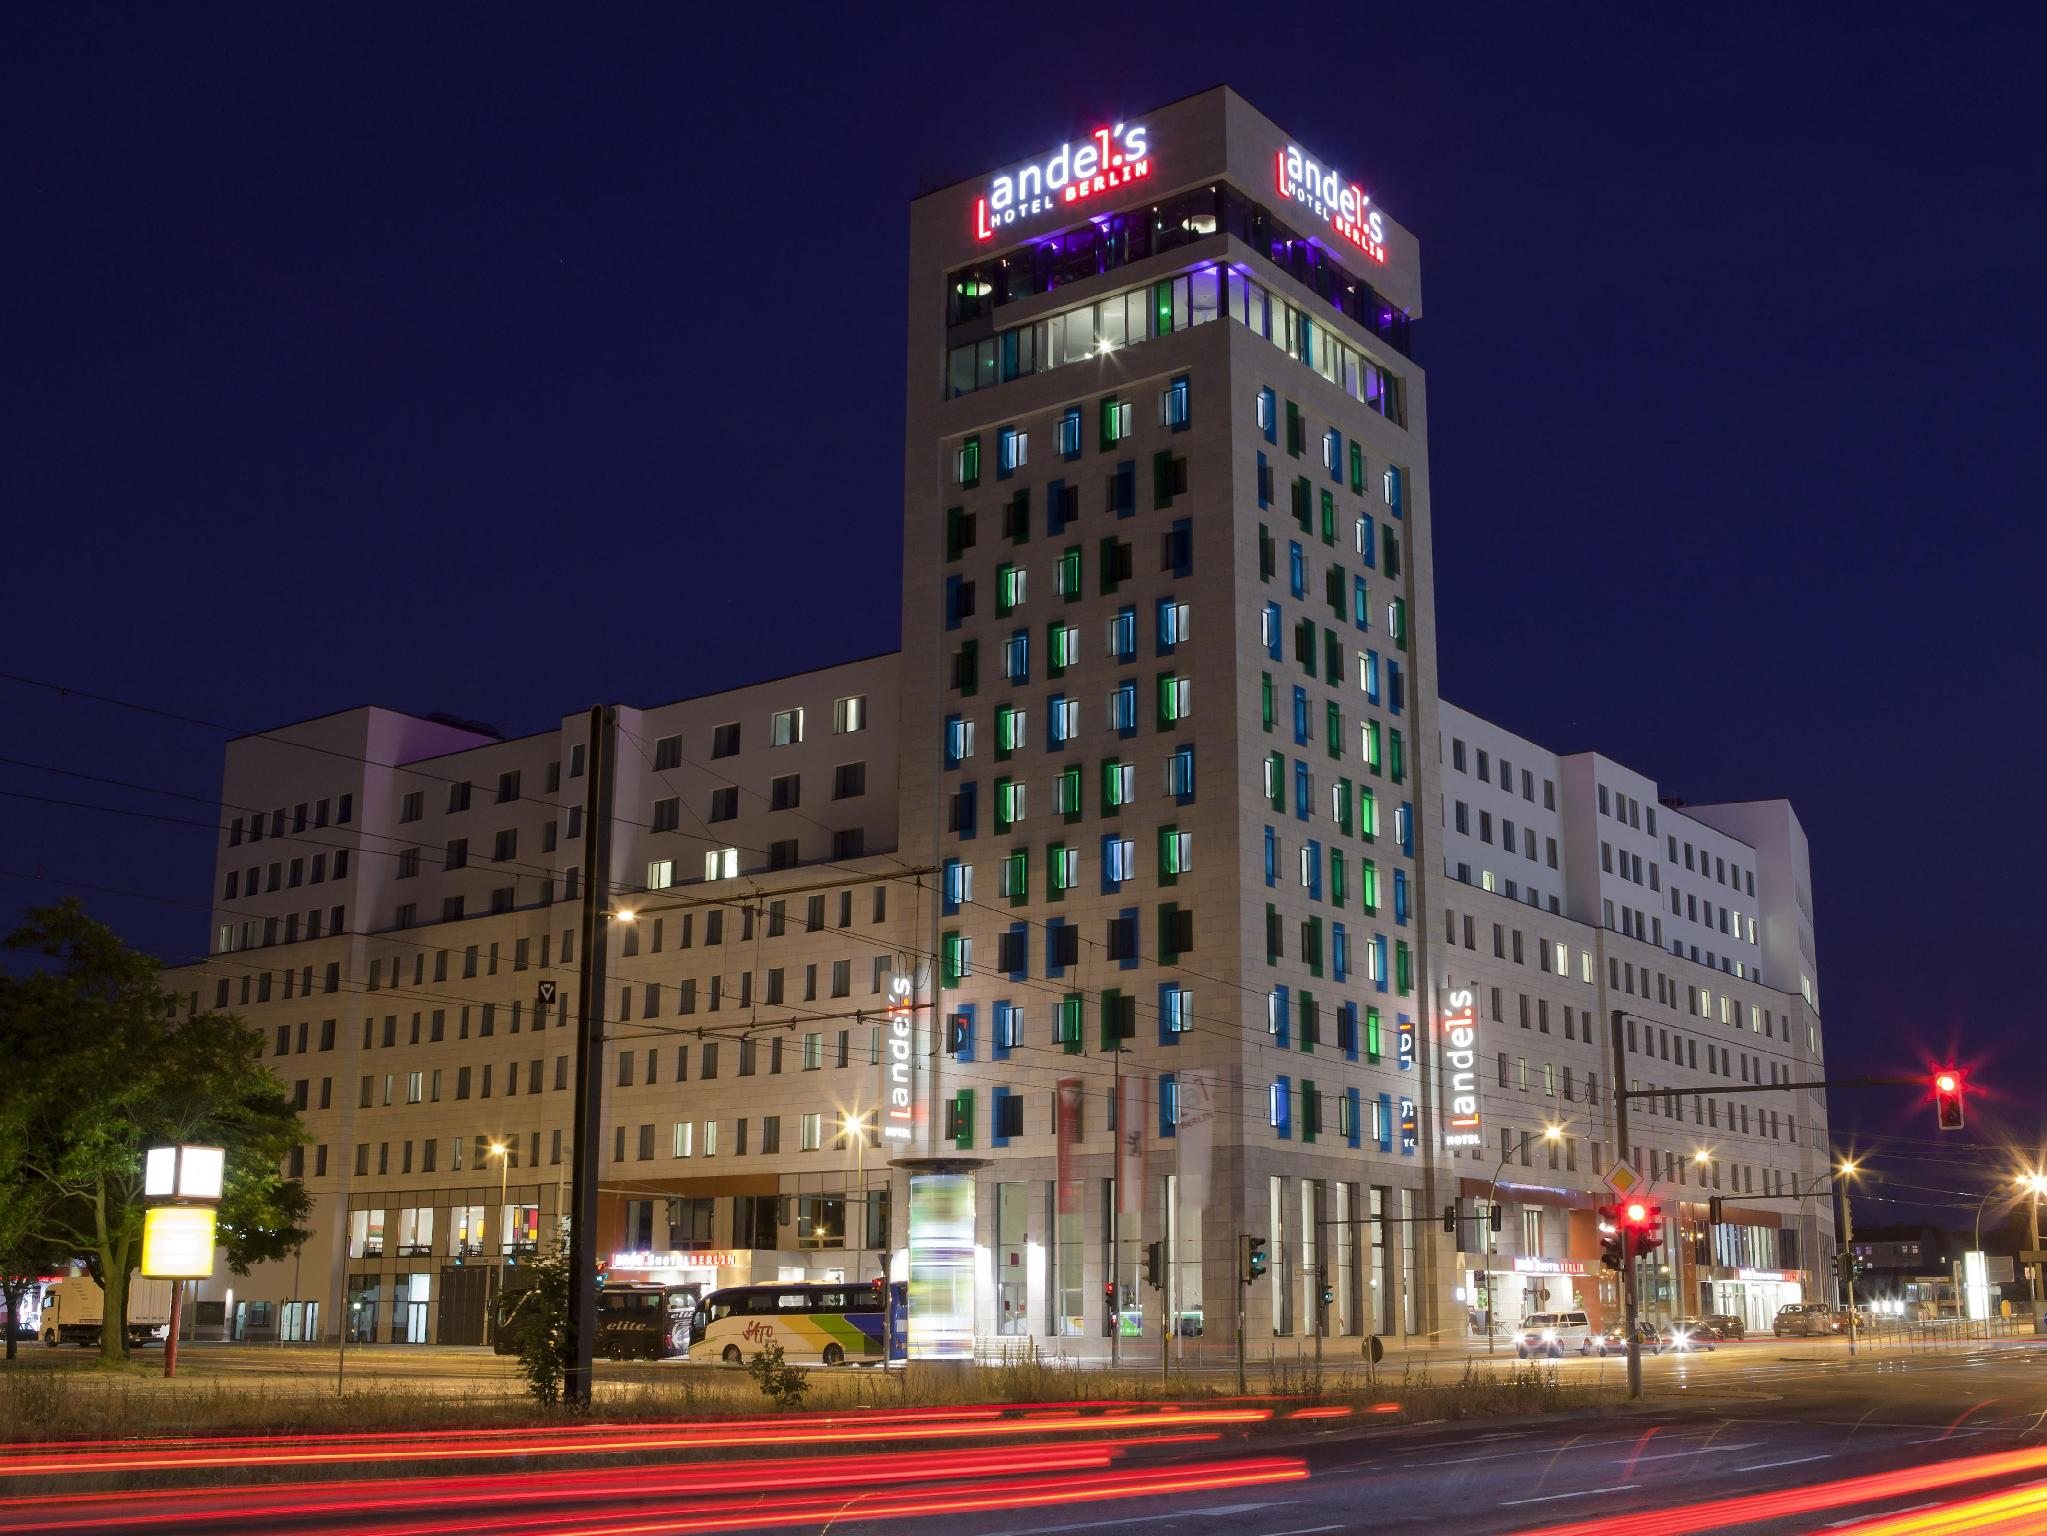 andel's Hotel Berlin, managed by Vienna International Hotels and Resorts Berlin - Manzara